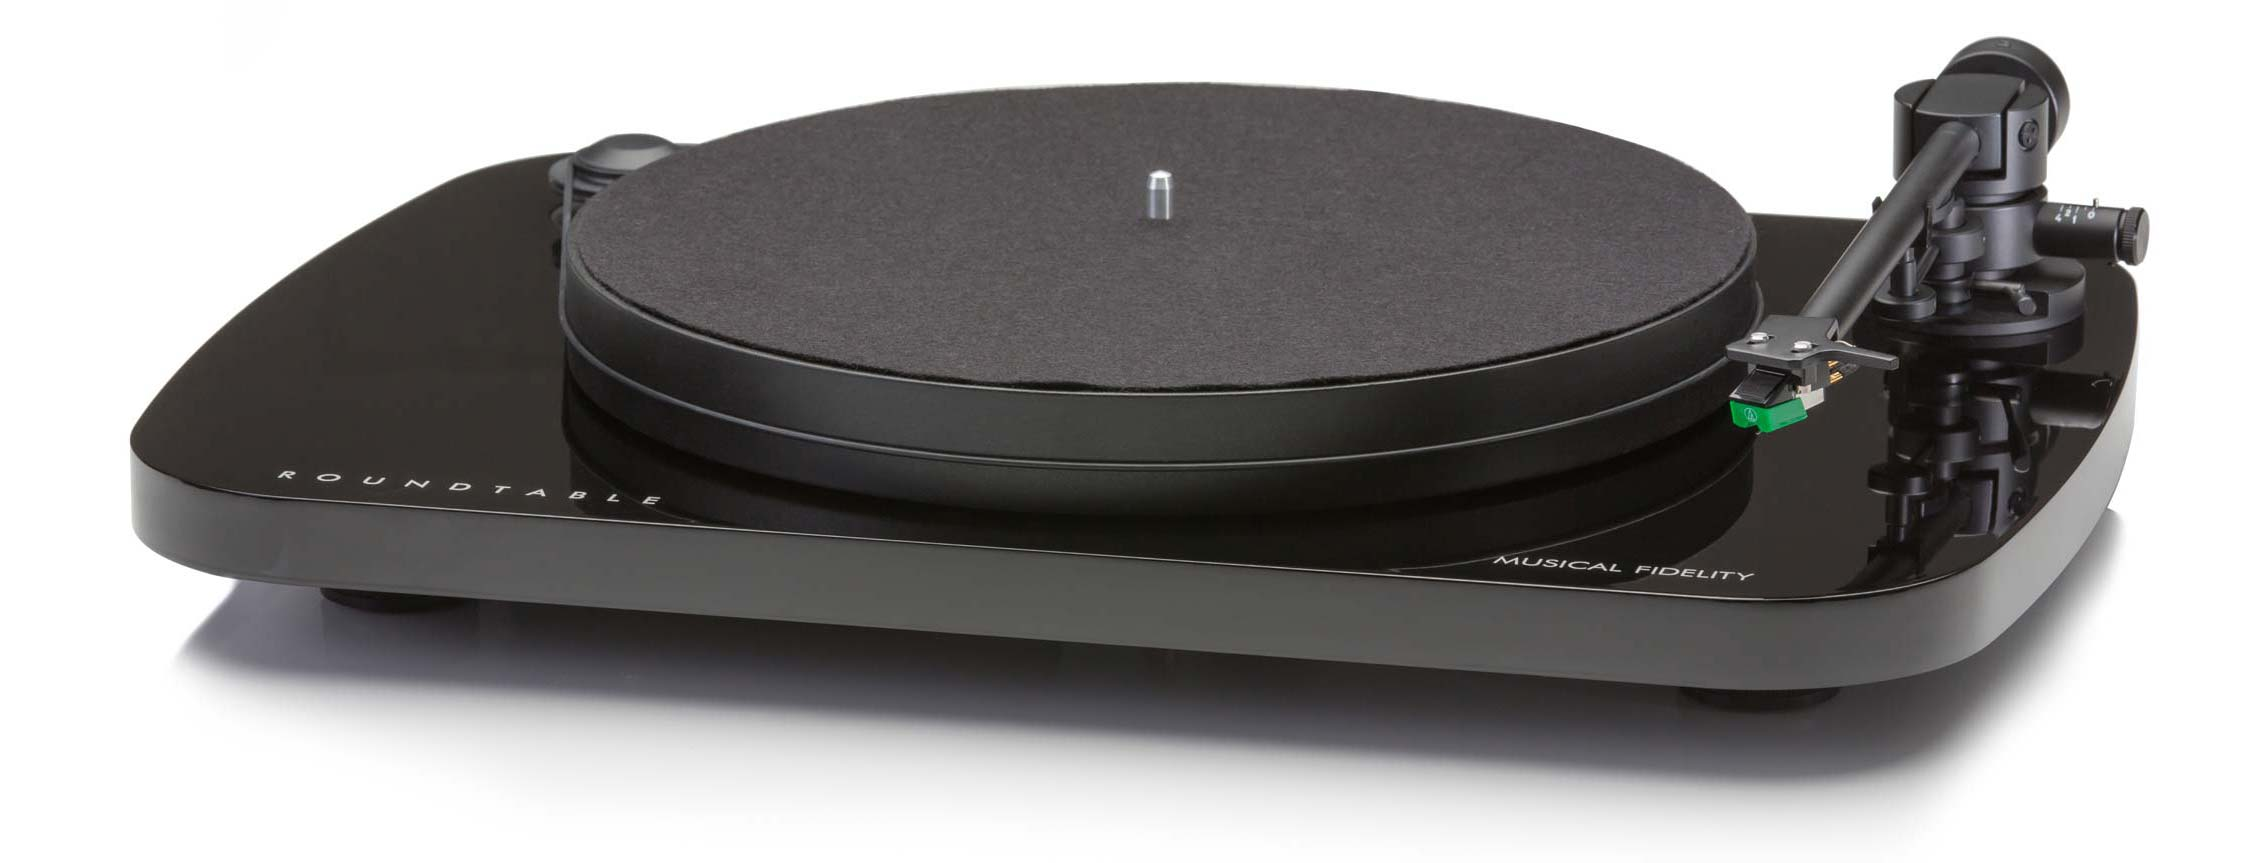 Roundtable Turntable in Black